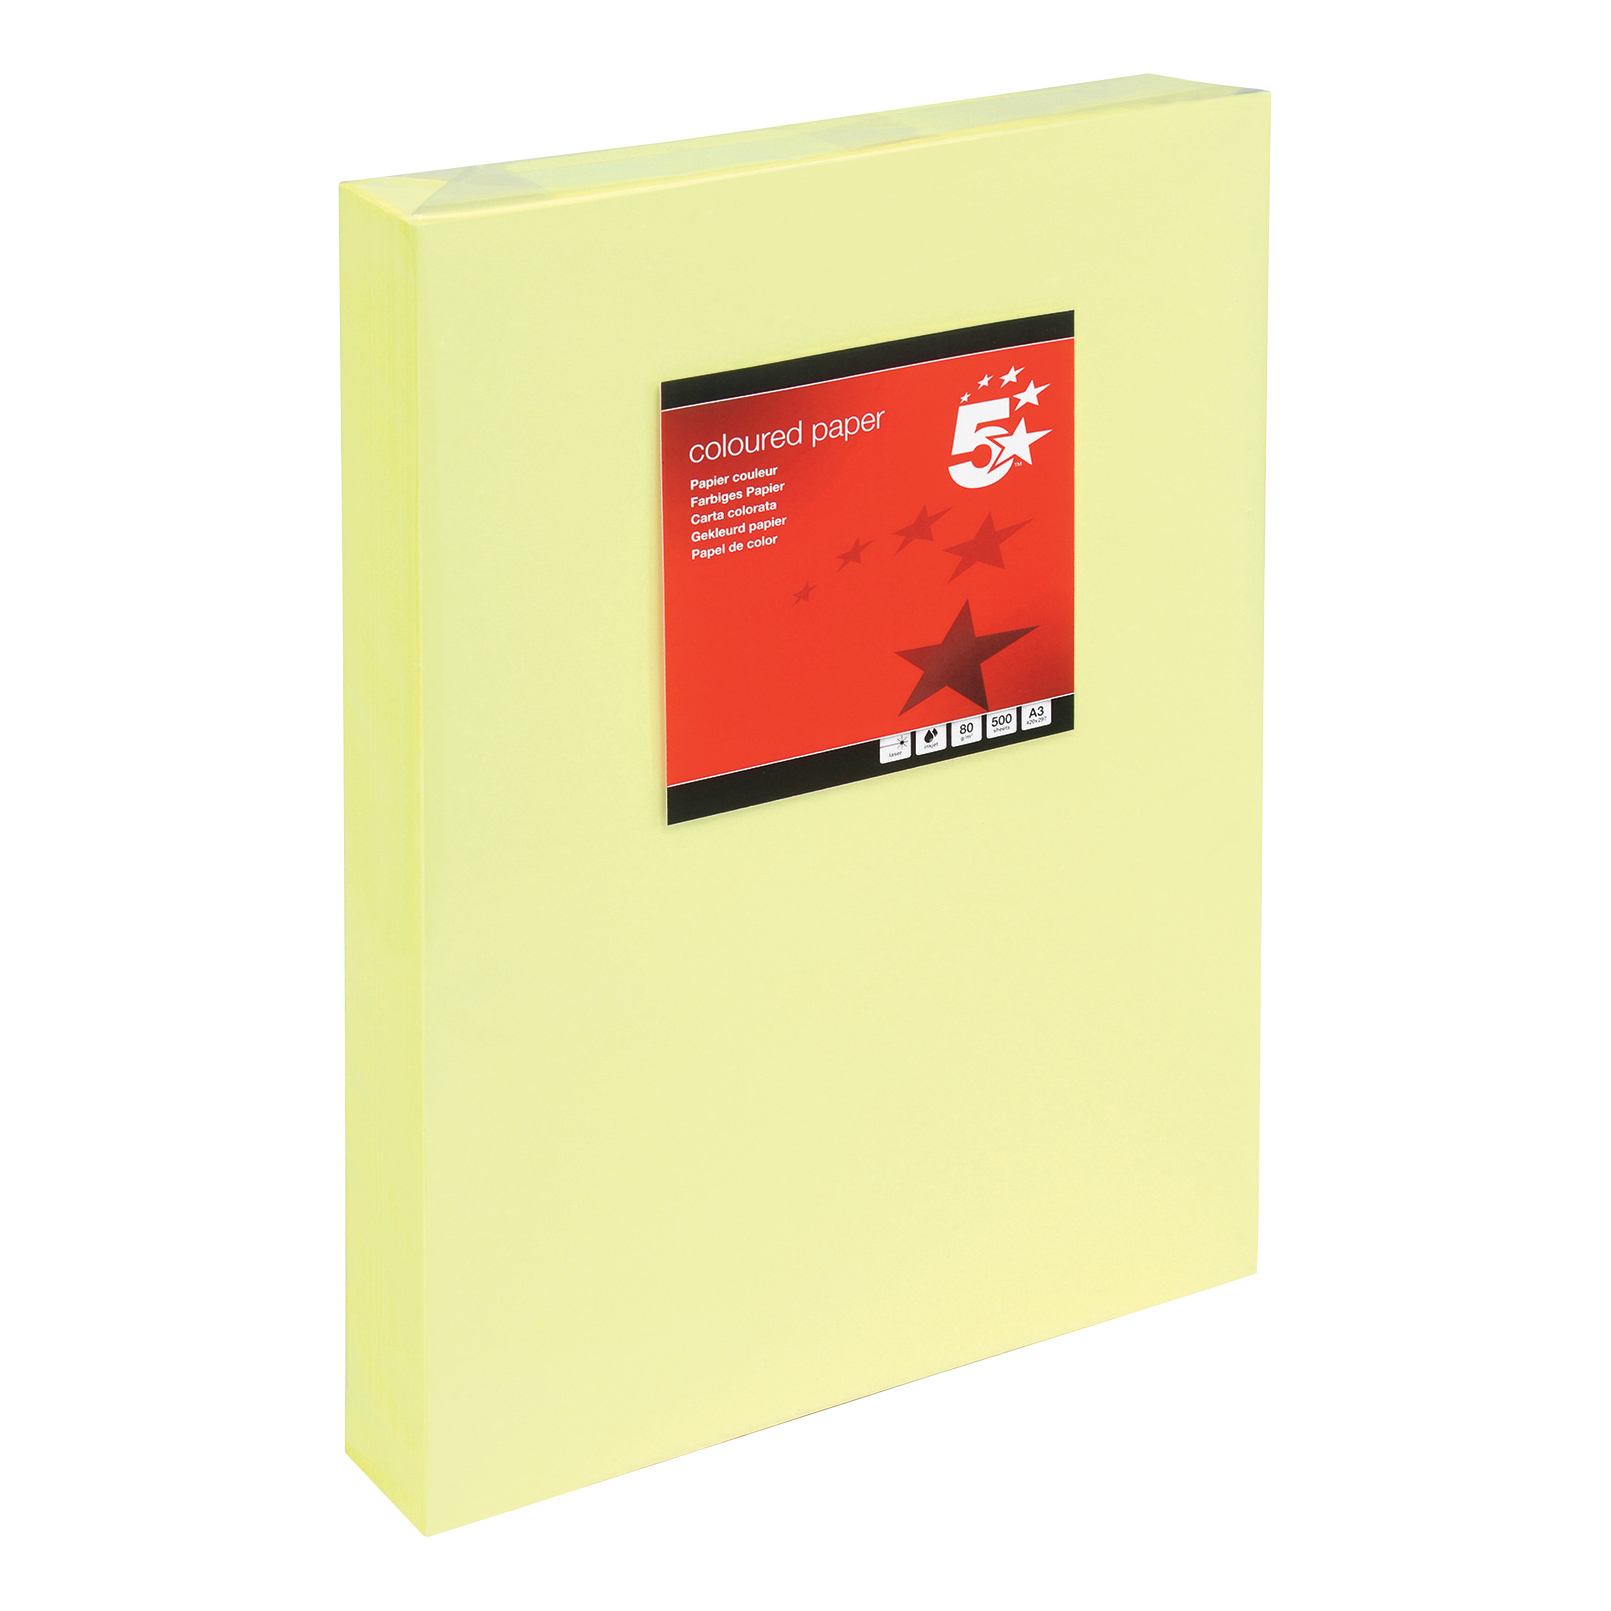 5 Star Office Coloured Copier Paper Multifunctional Ream-Wrapped 80gsm A3 Light Yellow 500 Sheets